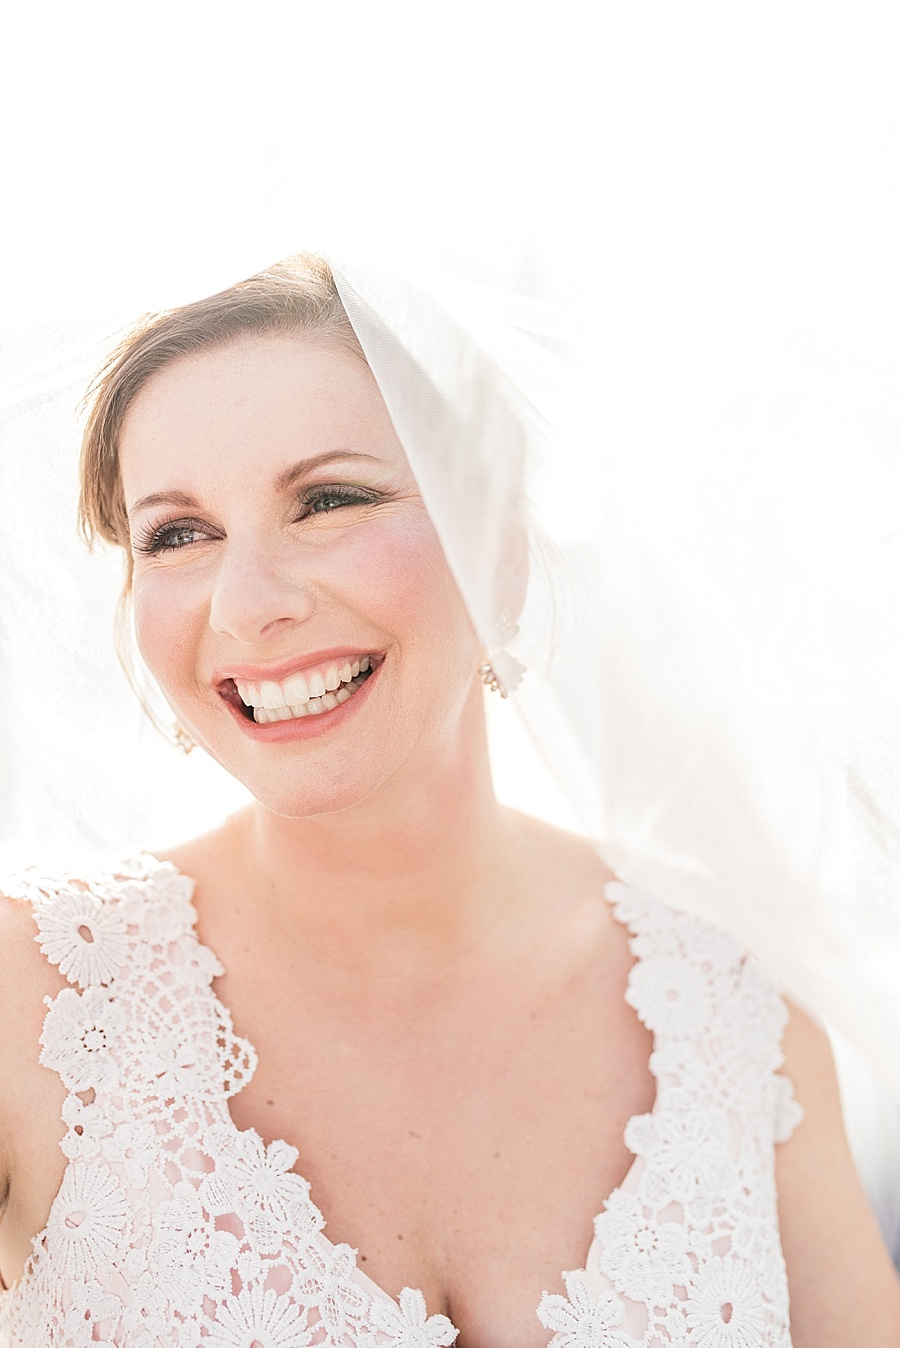 www.darrenbester.co.za - Wedding Photography - Cape Town - Craig & Melissa_0023.jpg